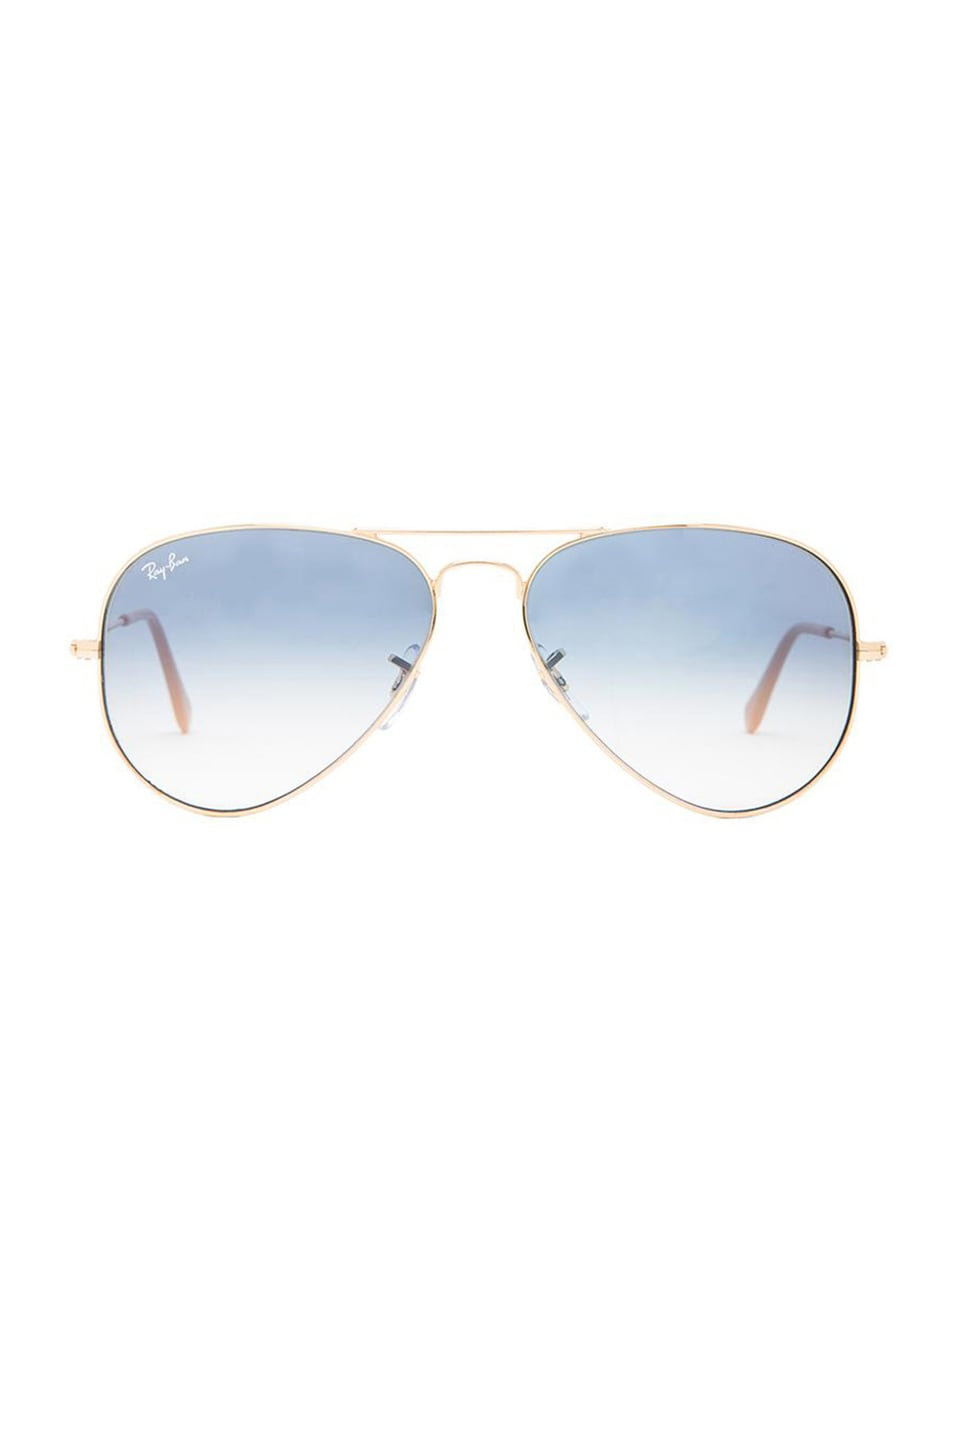 Ray-Ban Aviator in Arista and Gradient Light Blue